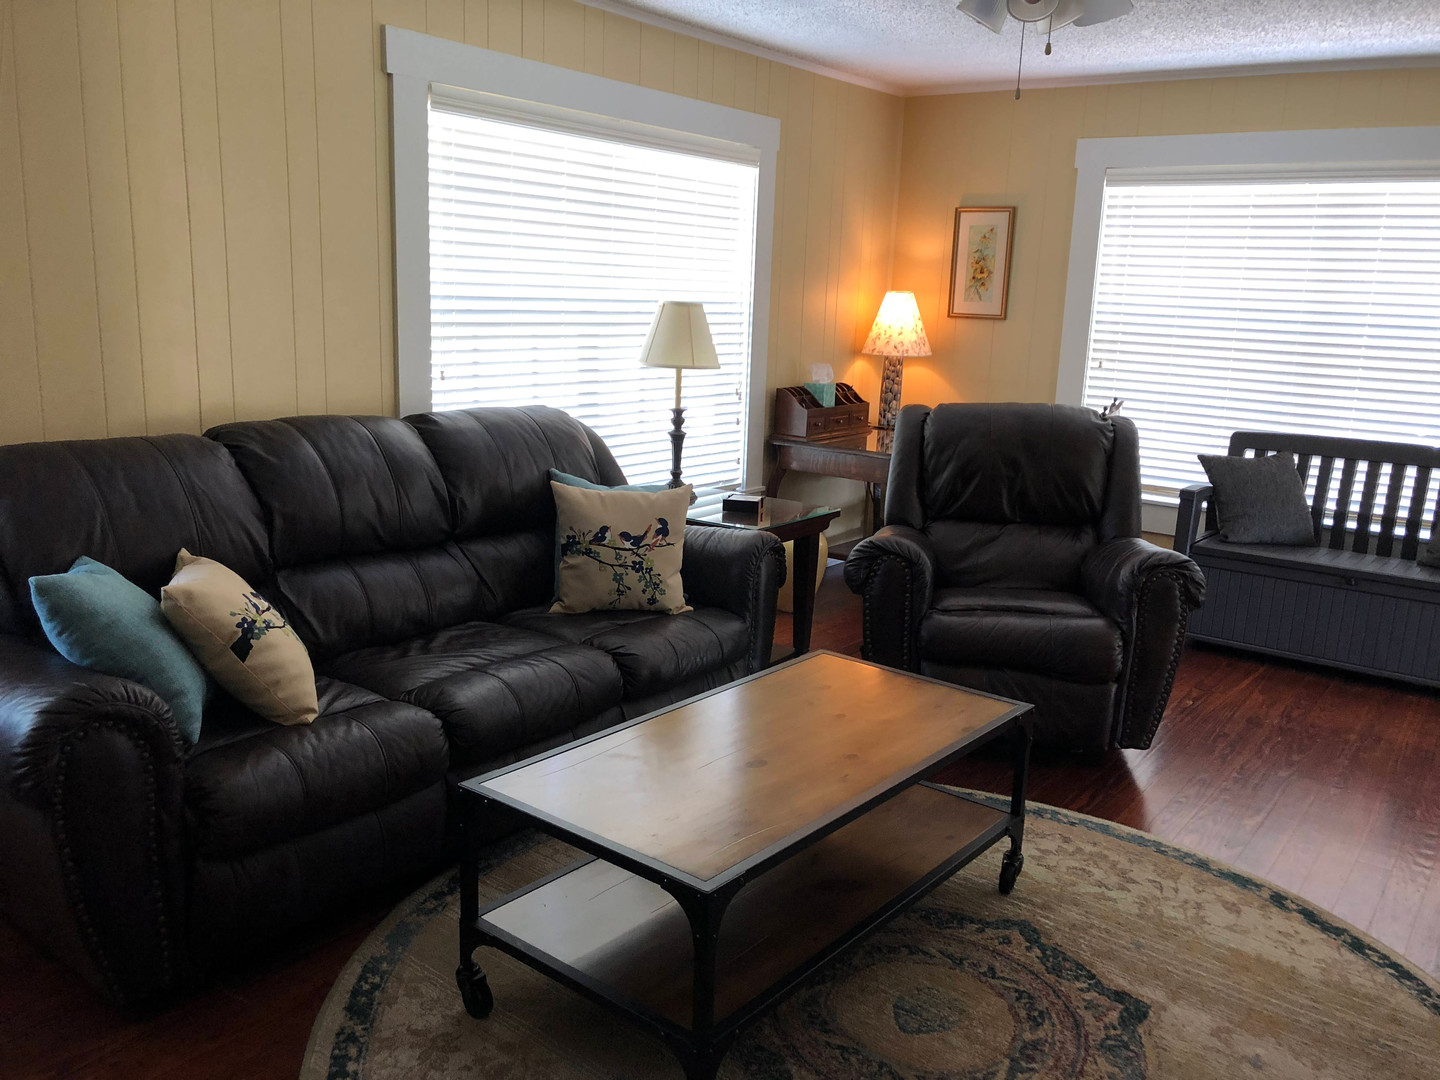 Living room with leather sofa and recliner.